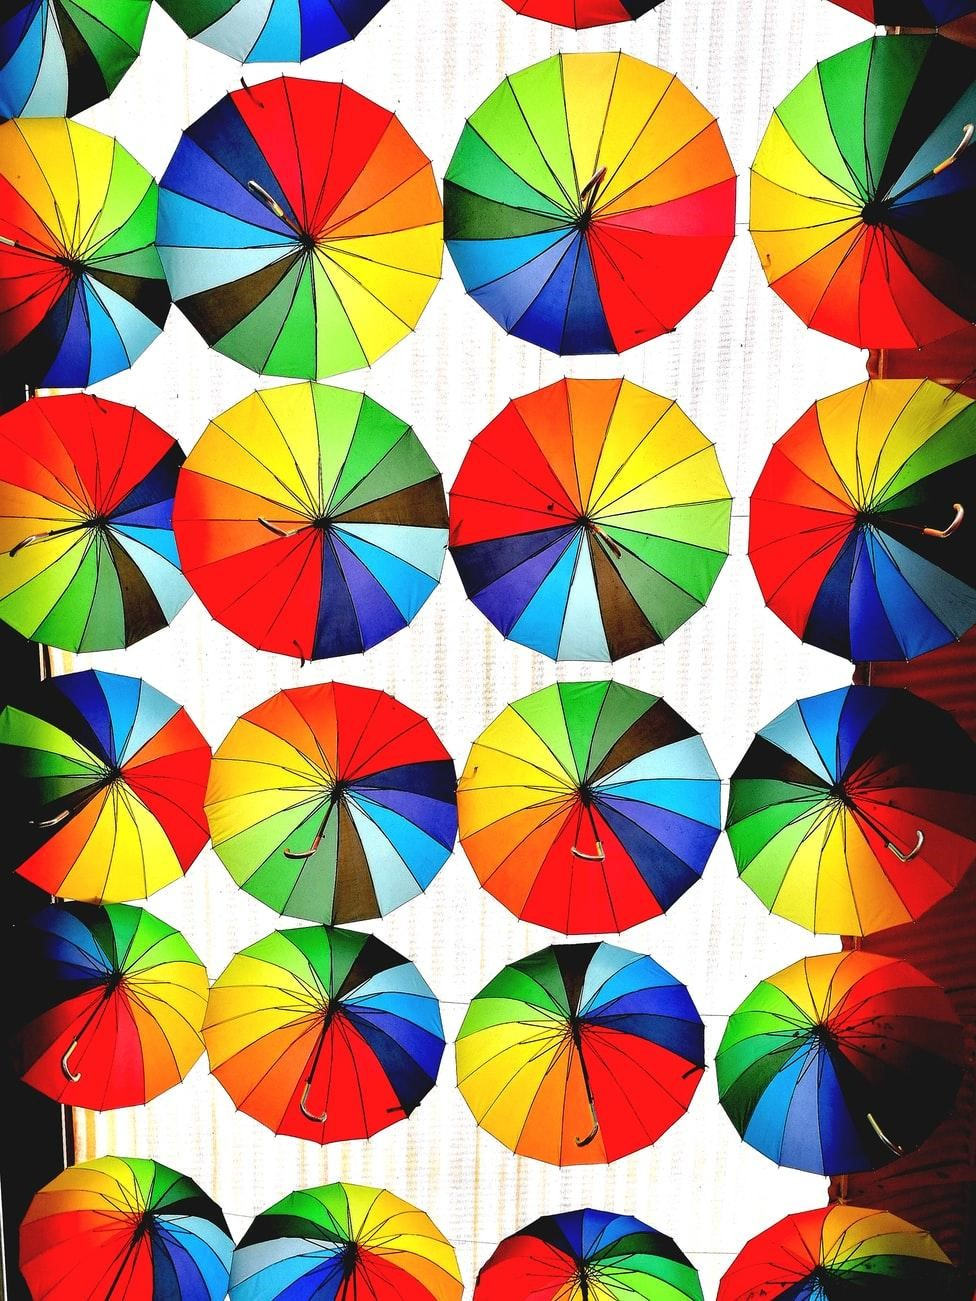 Umbrellas and the color wheel